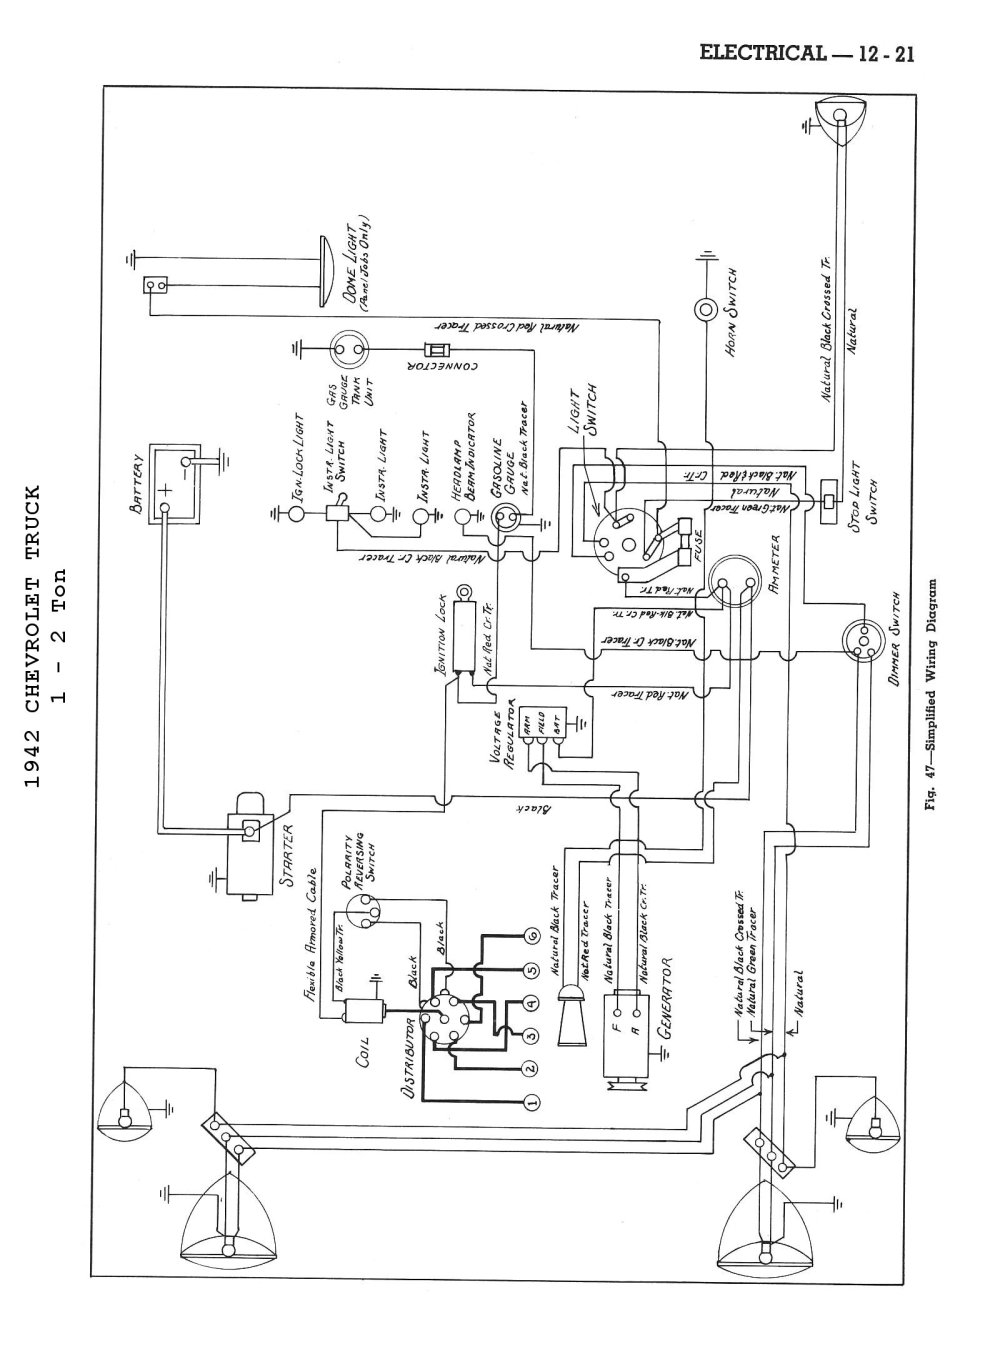 medium resolution of chevy wiring diagrams1942 body wiring diagram 1942 4x2 truck wiring